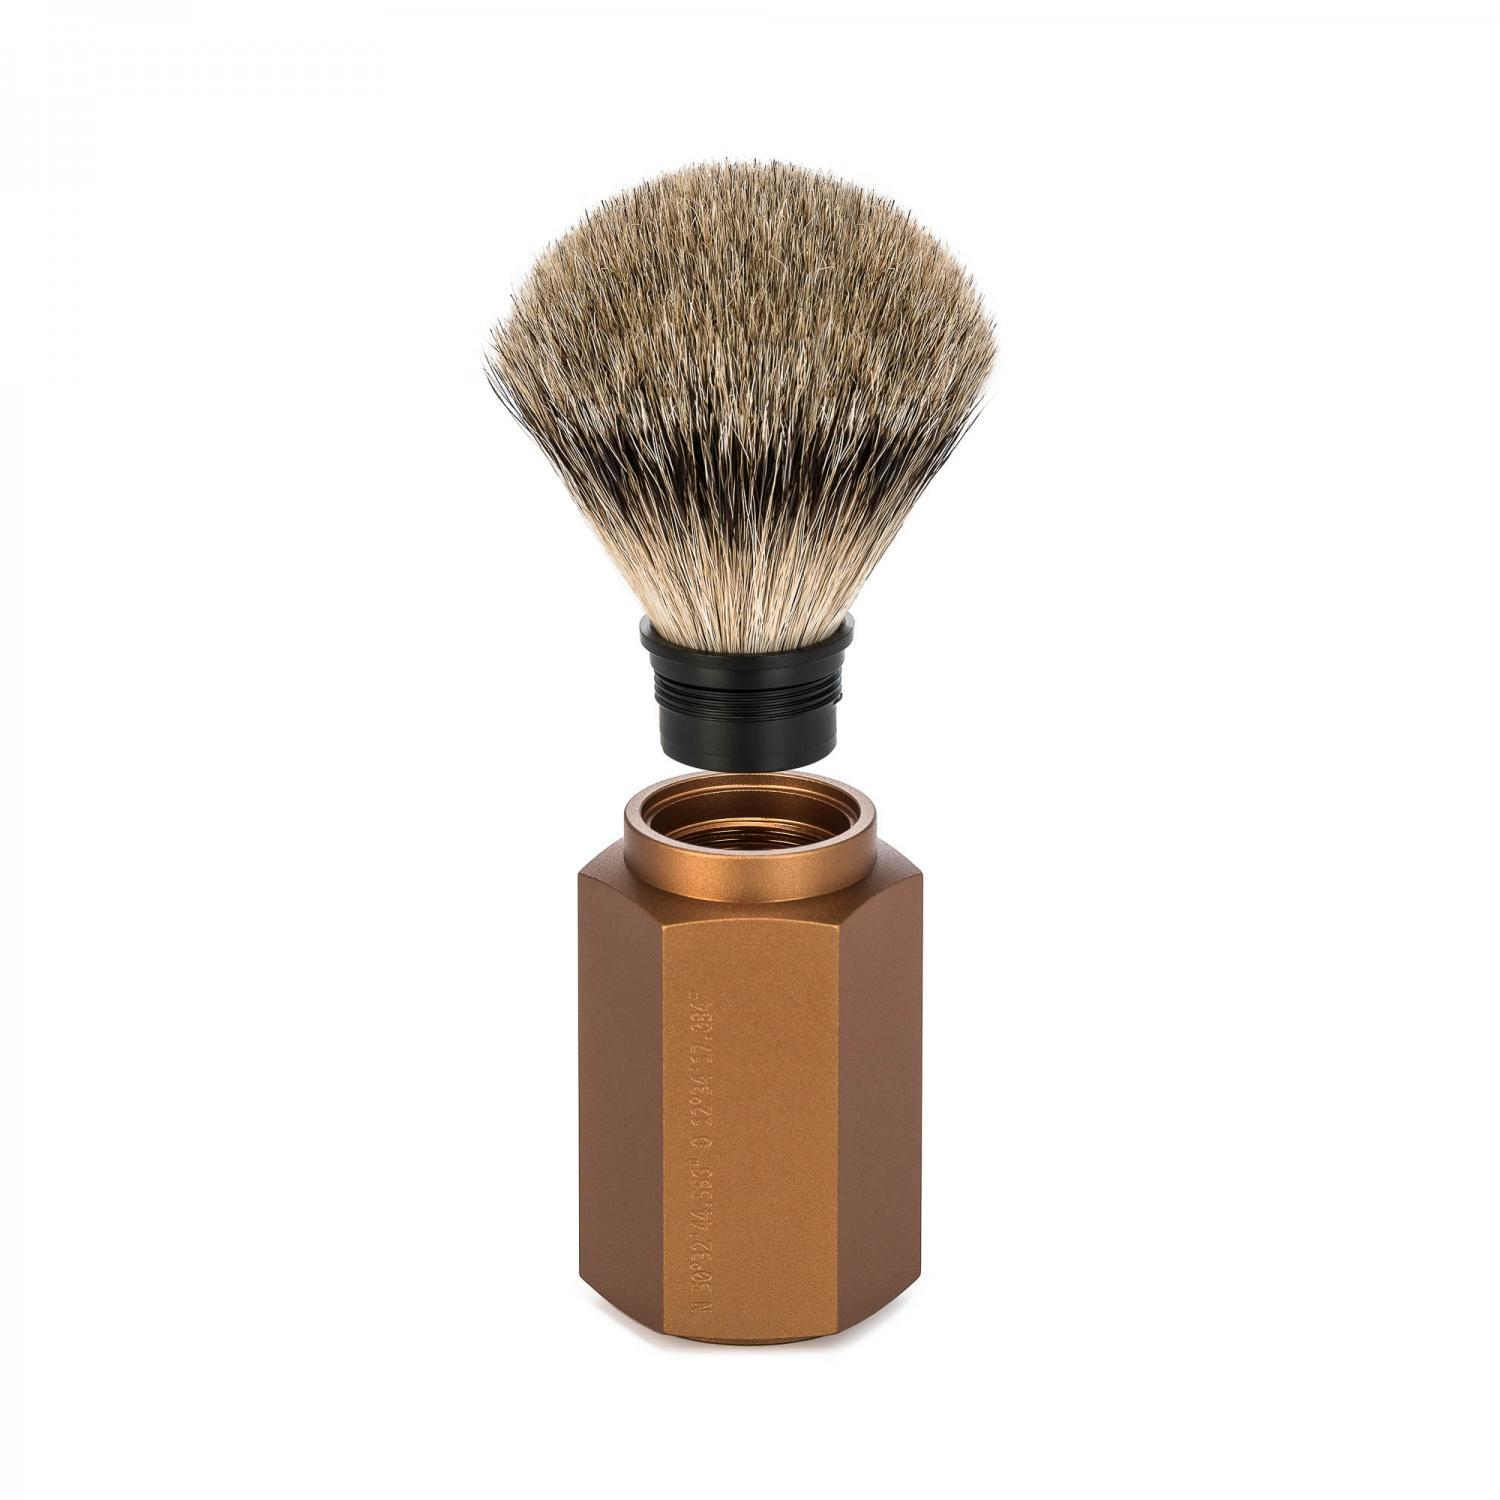 MUHLE HEXAGON Bronze Silvertip Badger Shaving Brush